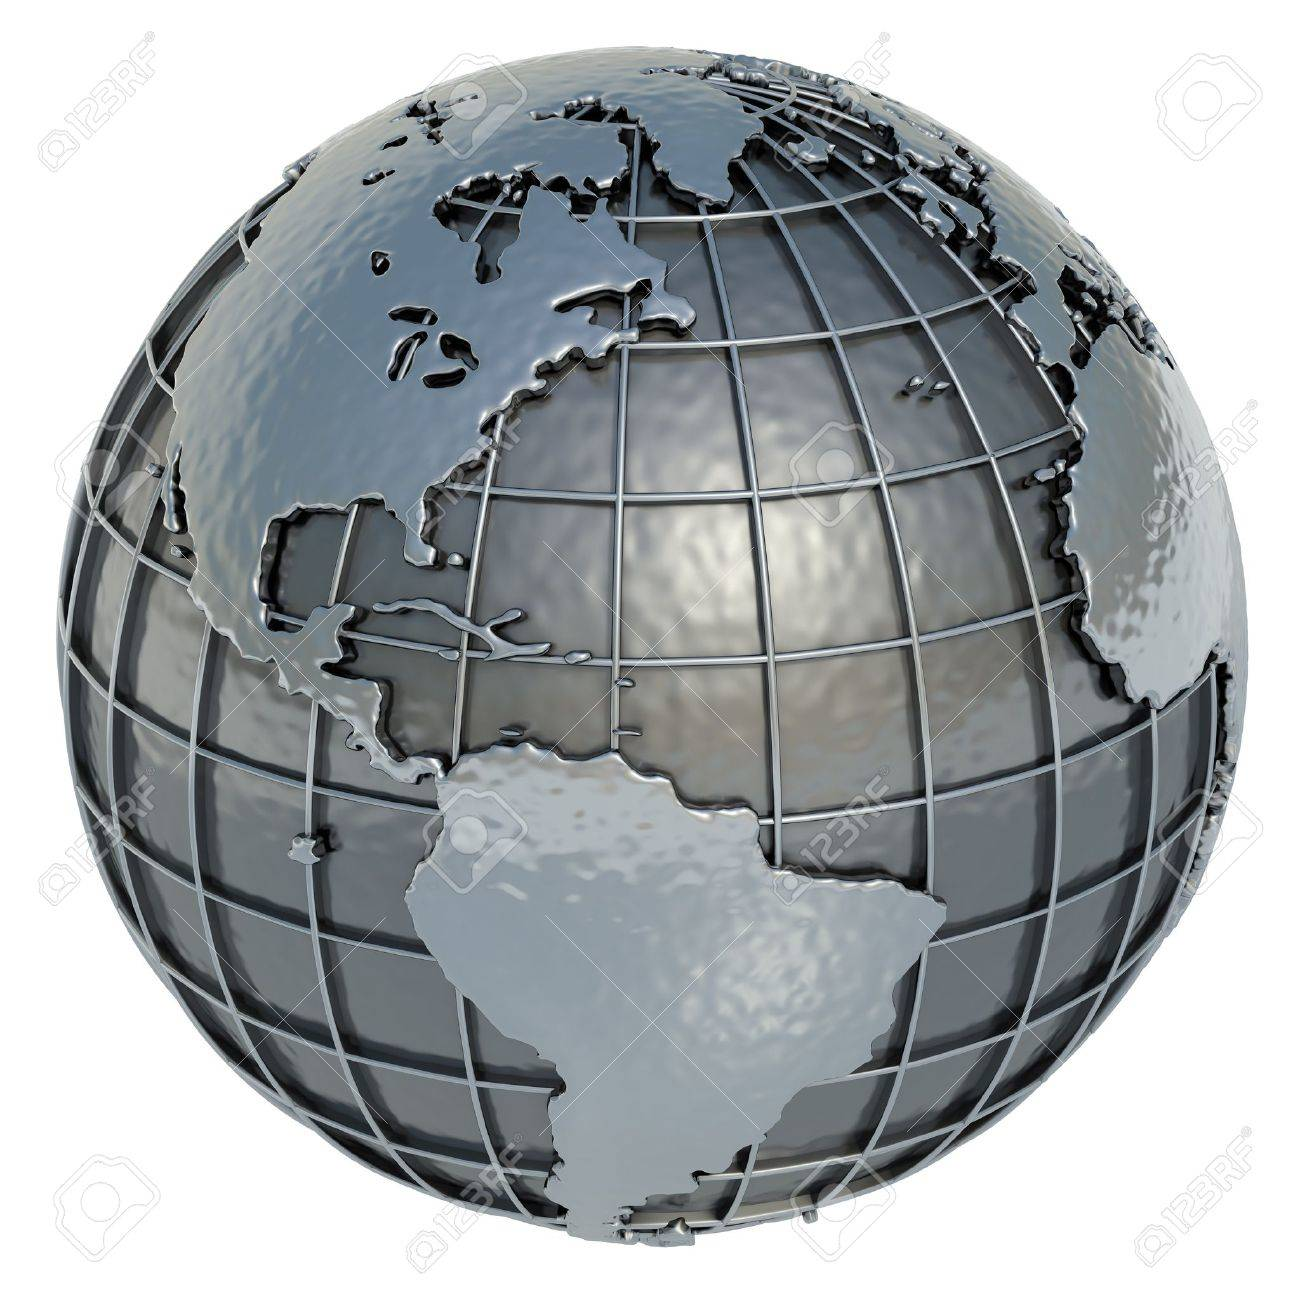 The Americas Planet Earth made of metal on a white background - 12997608